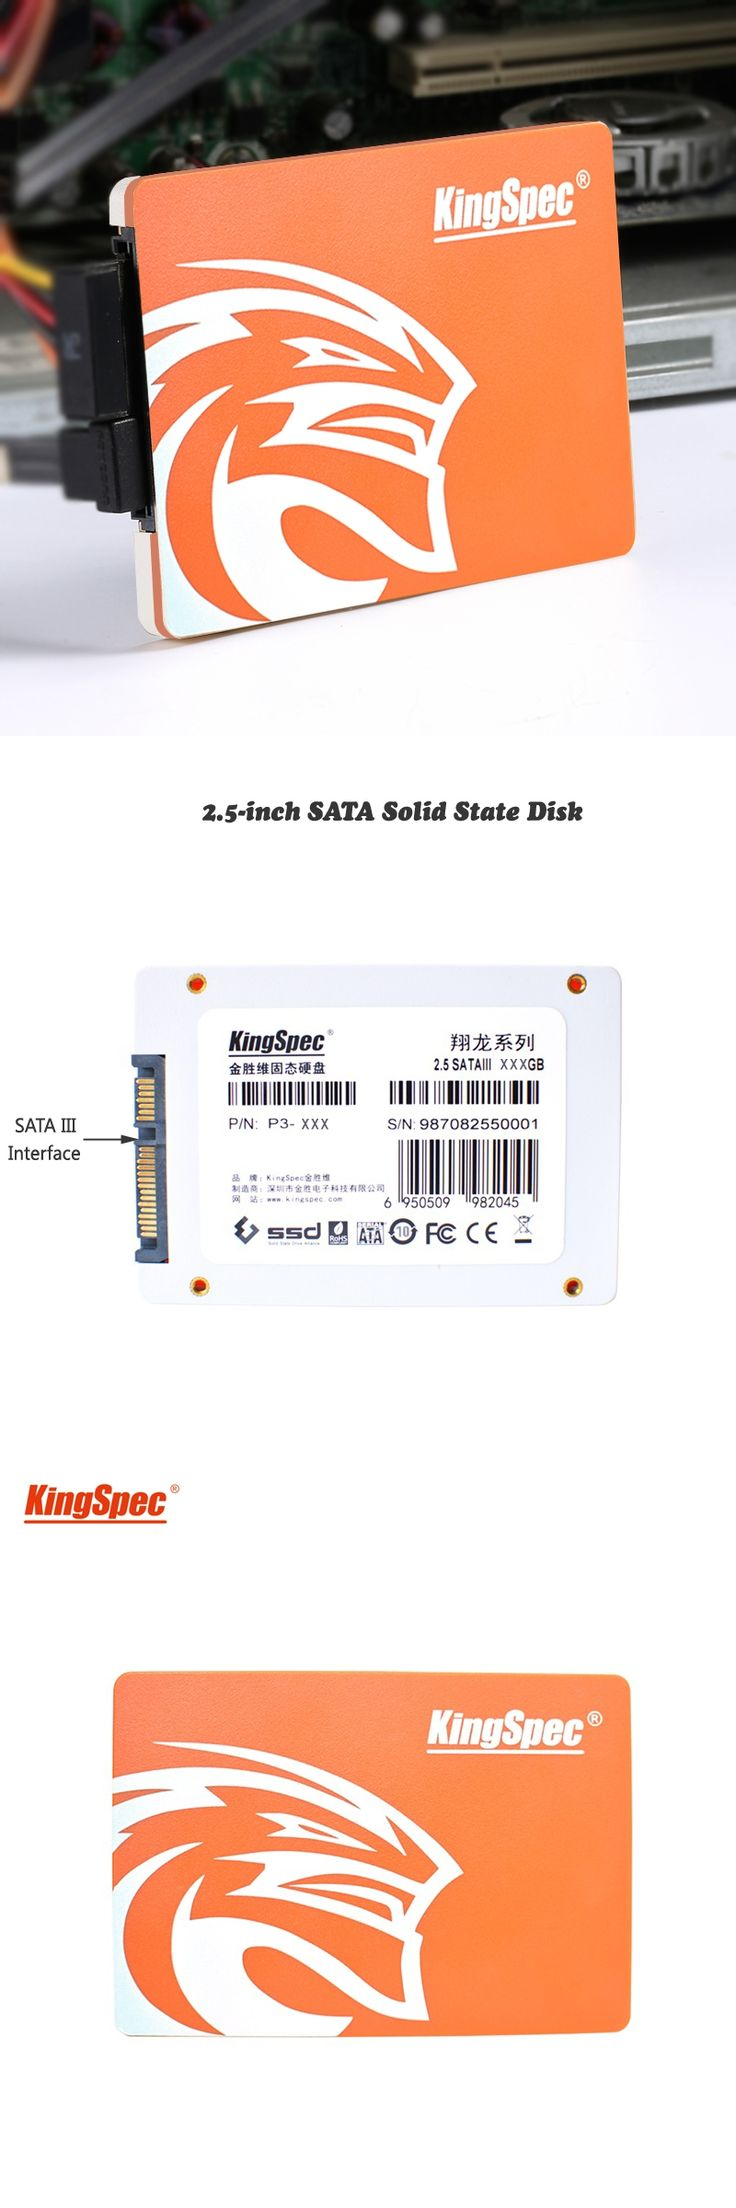 "P3 series brand kingspec 7mm 2.5""SSD/HDD 120GB